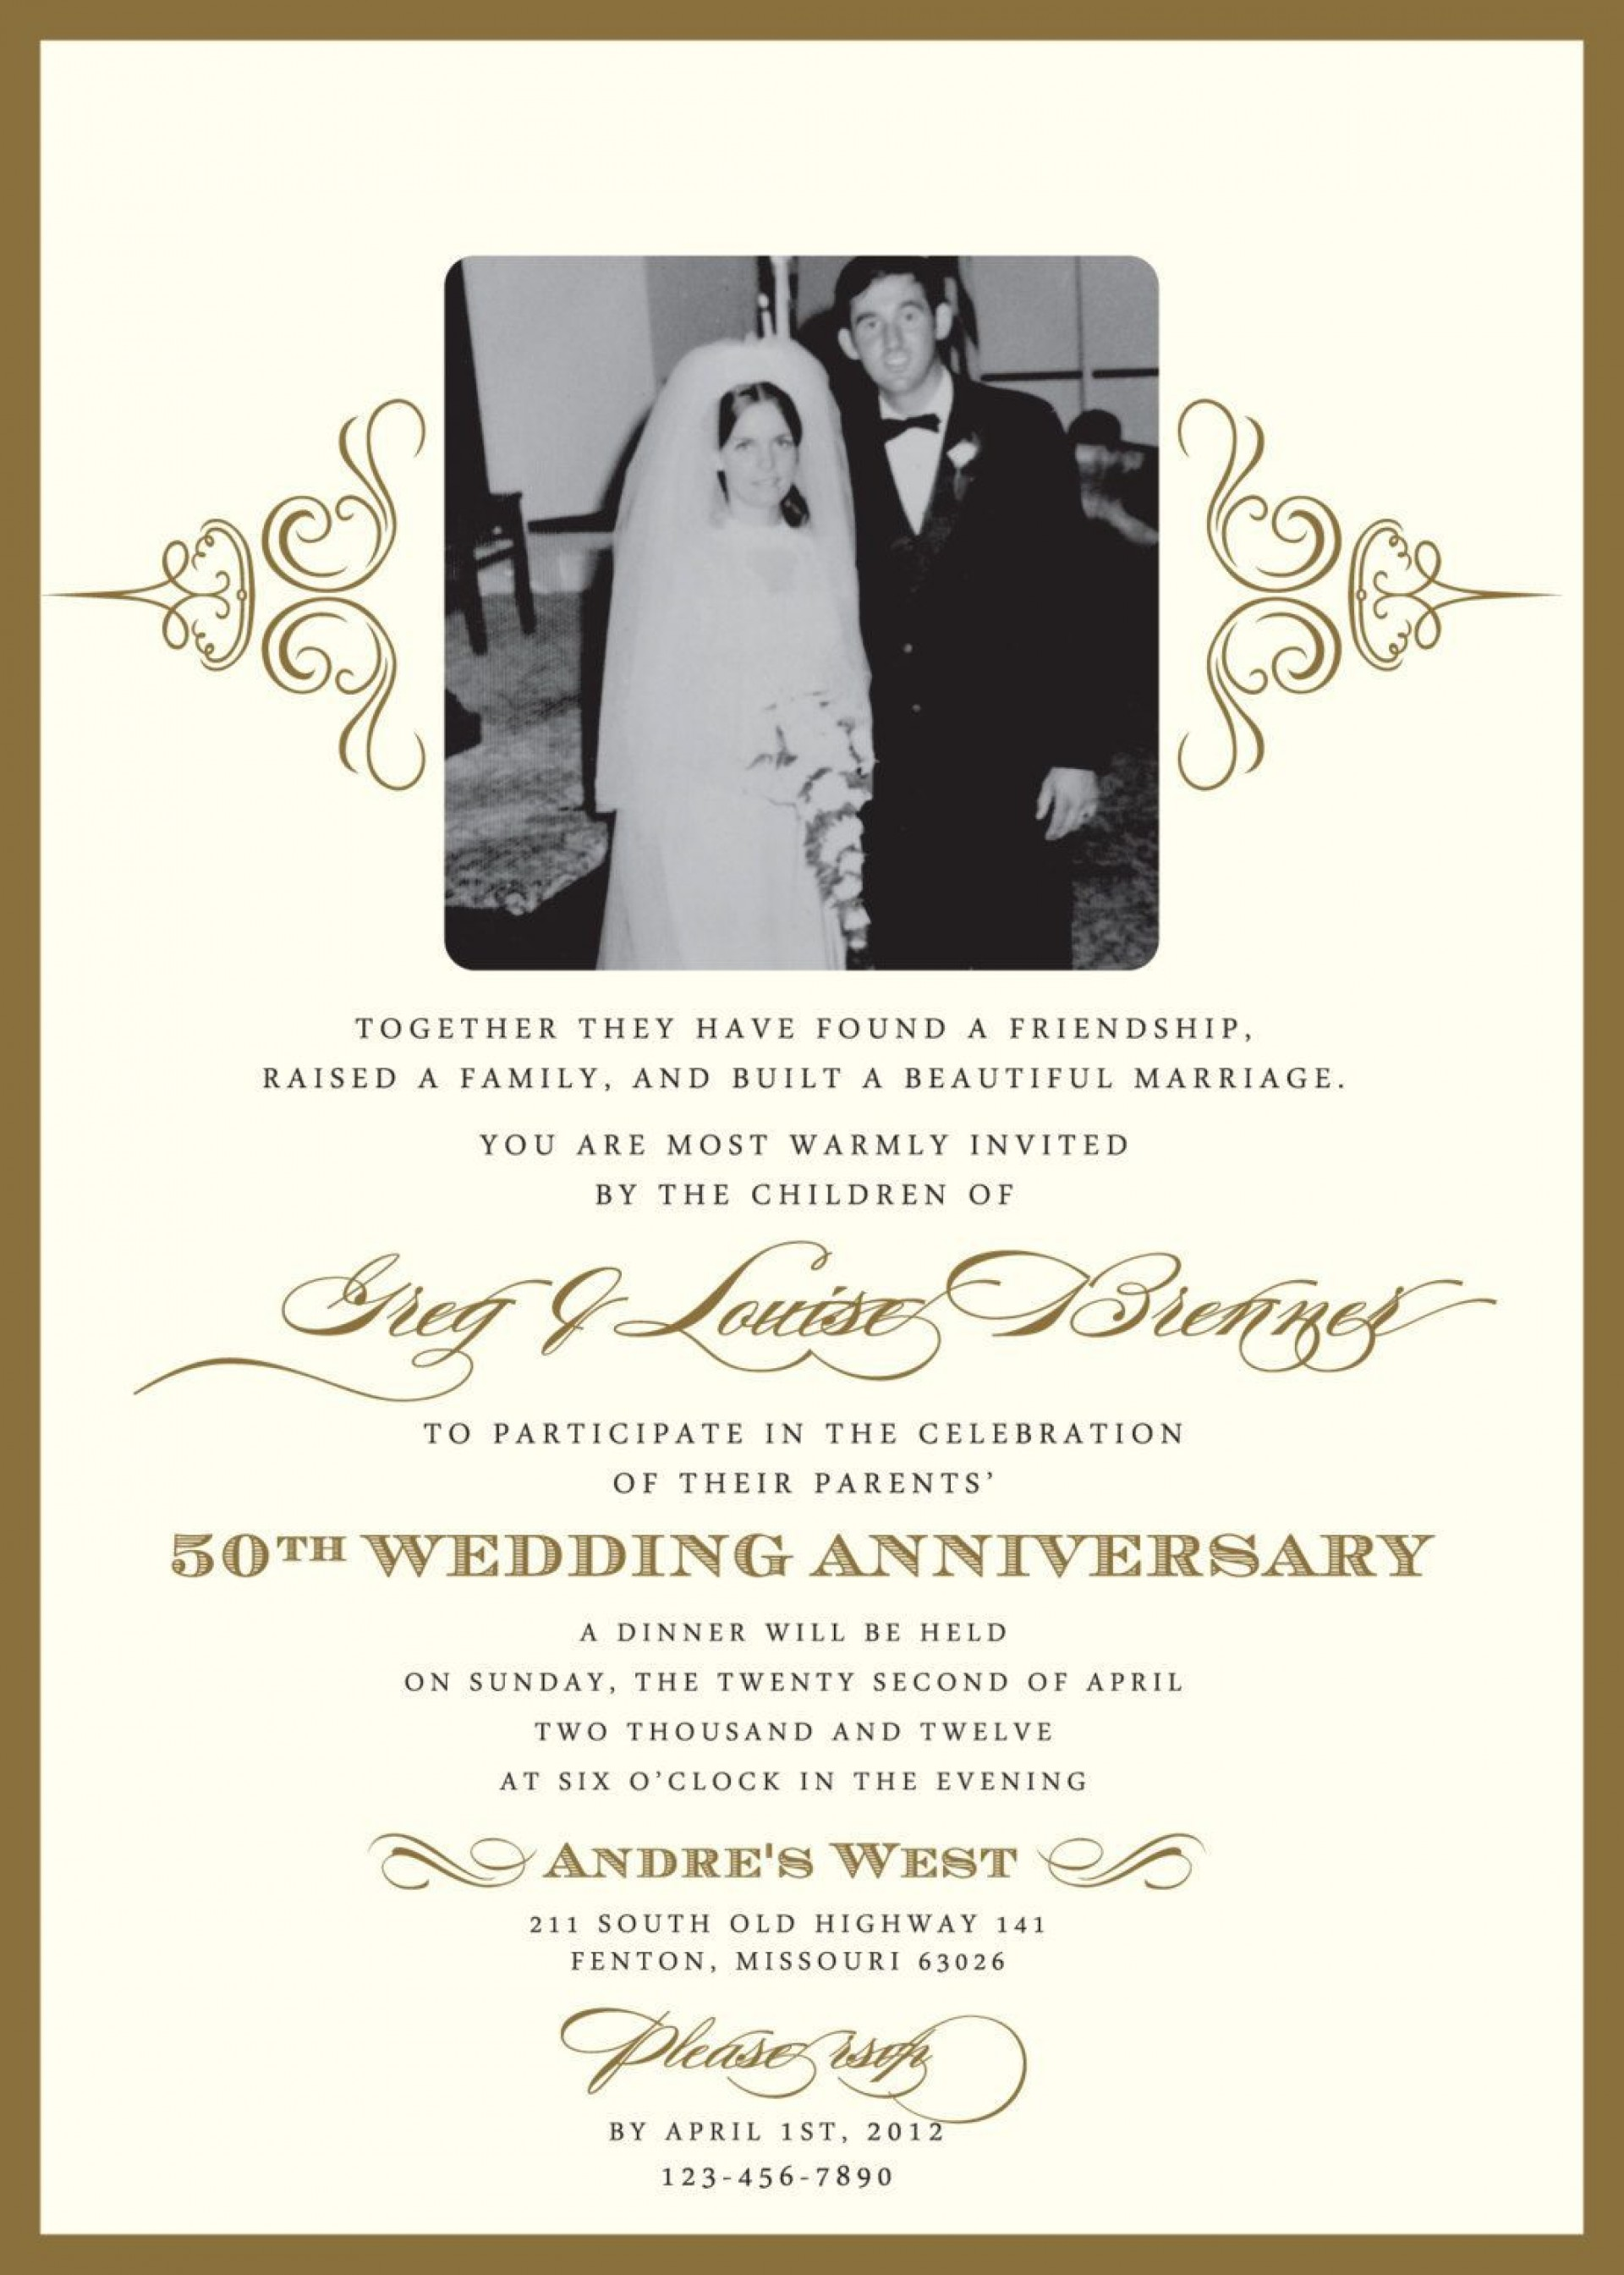 005 Magnificent 50th Wedding Anniversary Invitation Sample Picture  Samples Free Party Template Card Idea1920